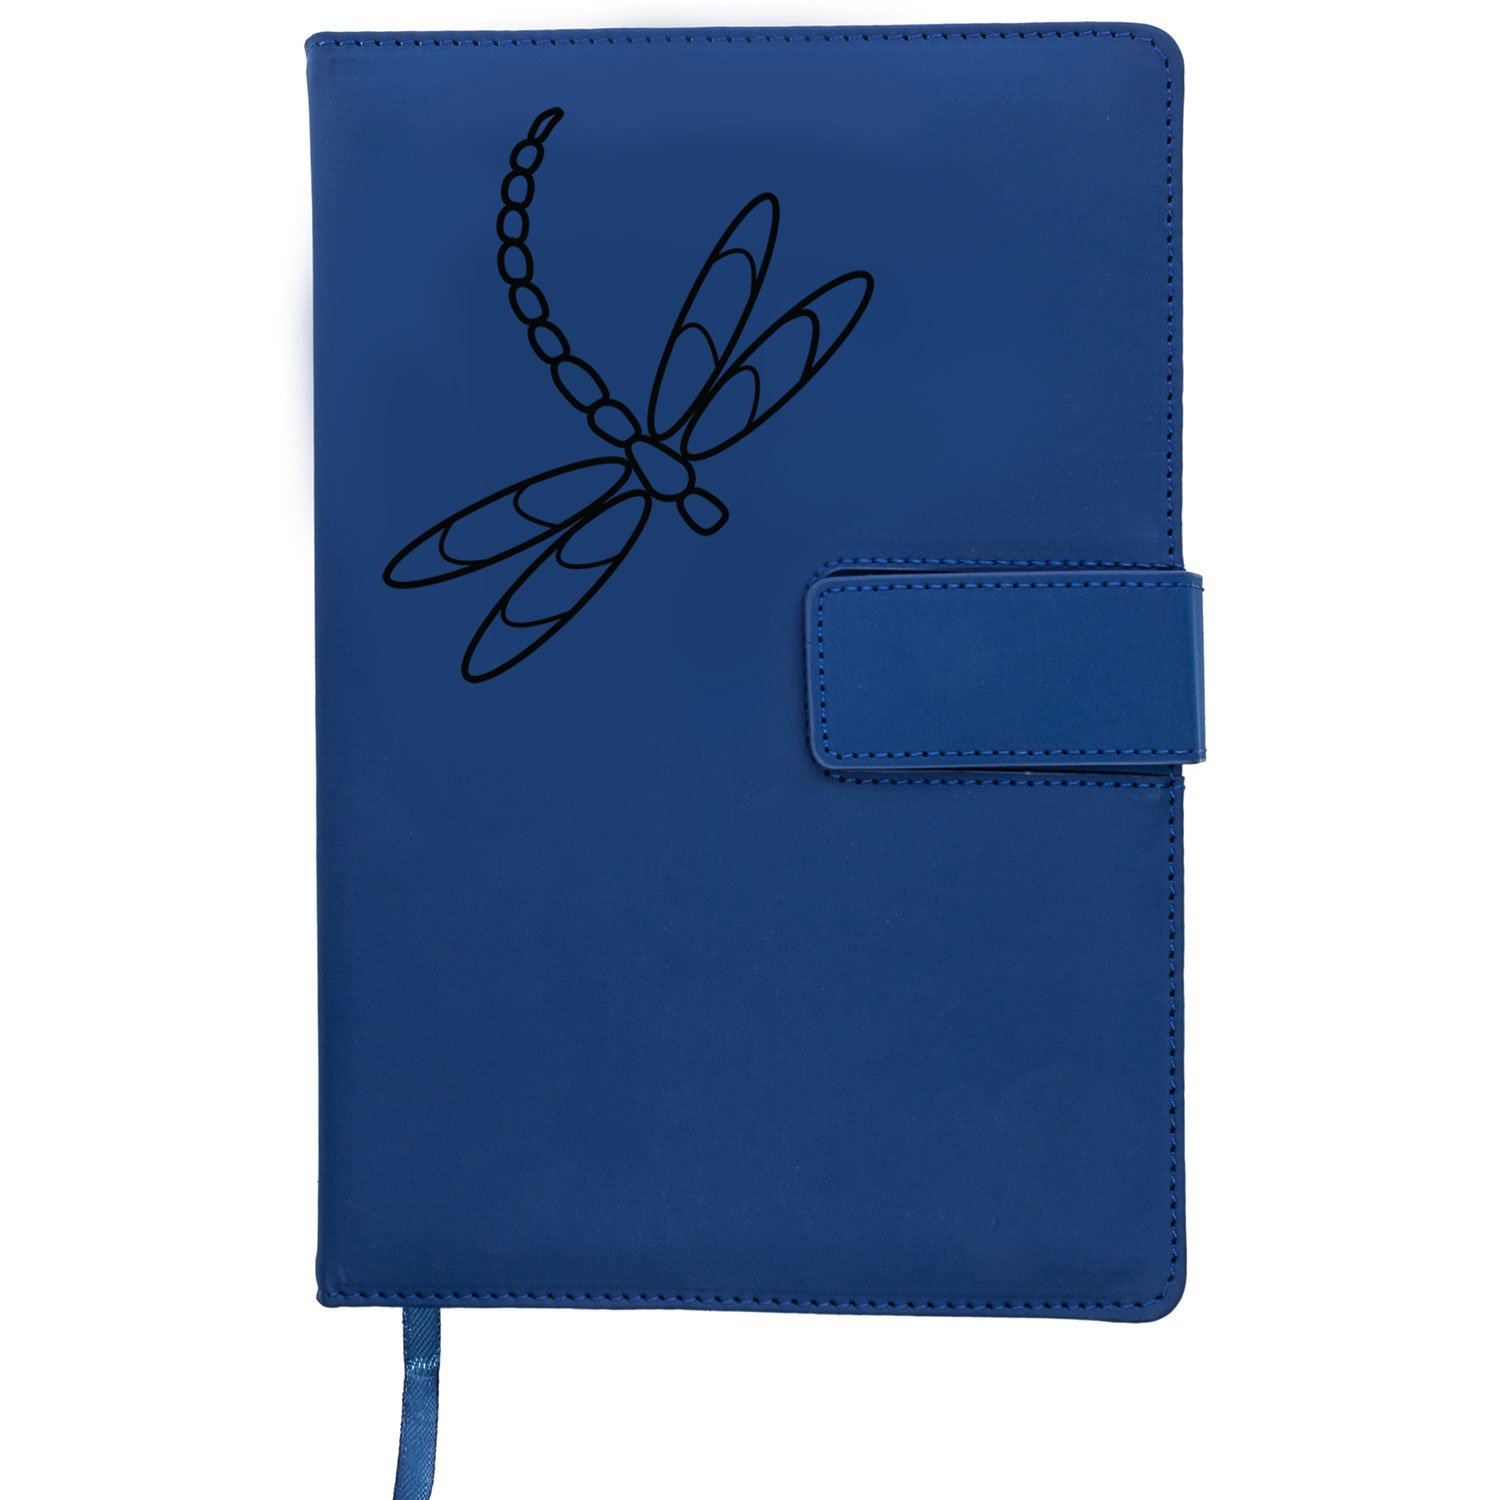 The Dragonfly Refillable Writing Journal | Faux Leather Cover, Magnetic Clasp + Pen Loop | Blank Notebook | 200 Lined Pages, 5 x 8 Inches for Travel, Personal, Poetry | Blue | The Amazing Office by The Amazing Office (Image #4)